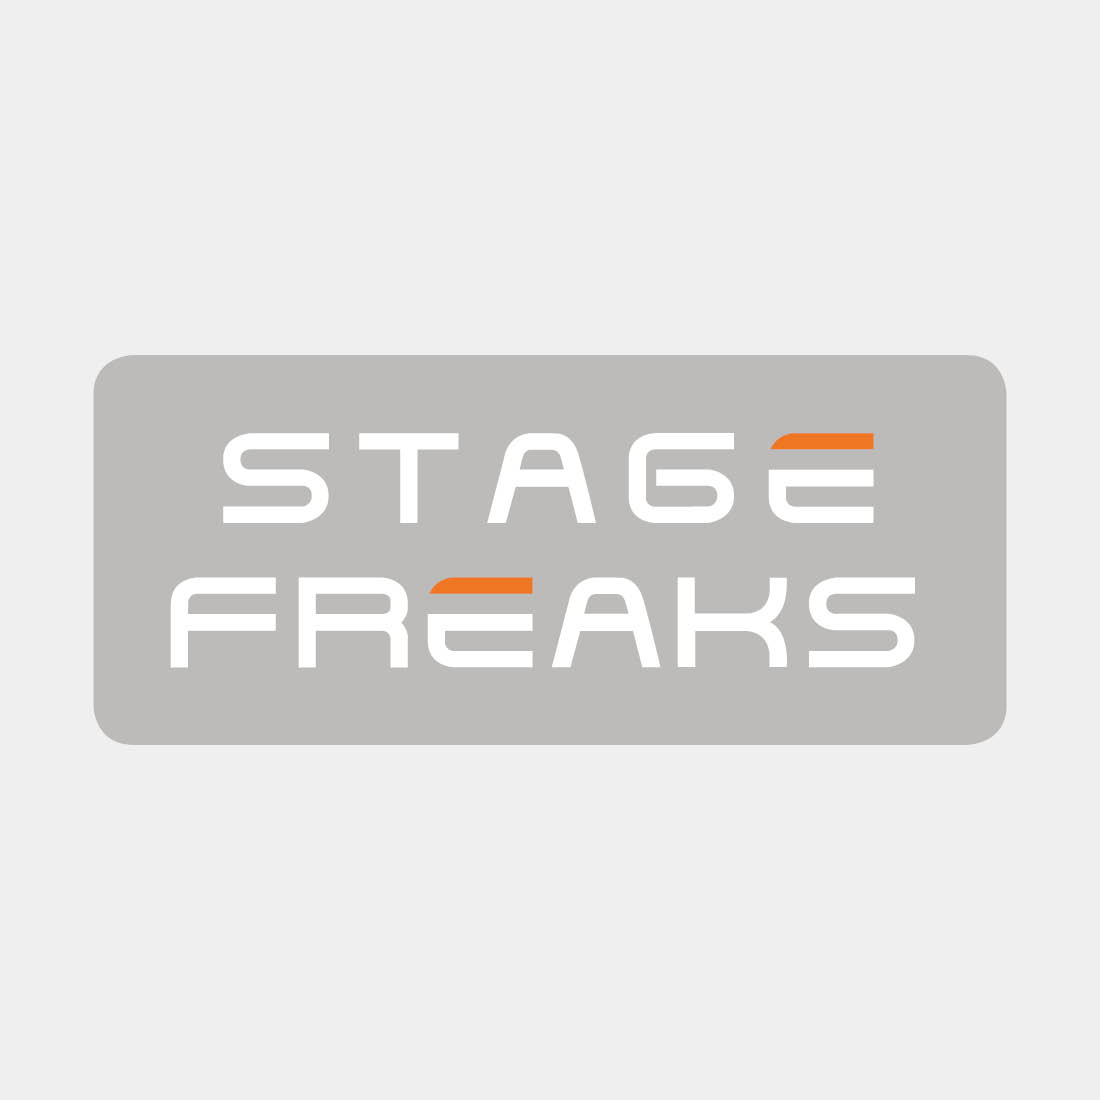 Stagefreaks INCOMPLETE tape 50 mm x 66 m